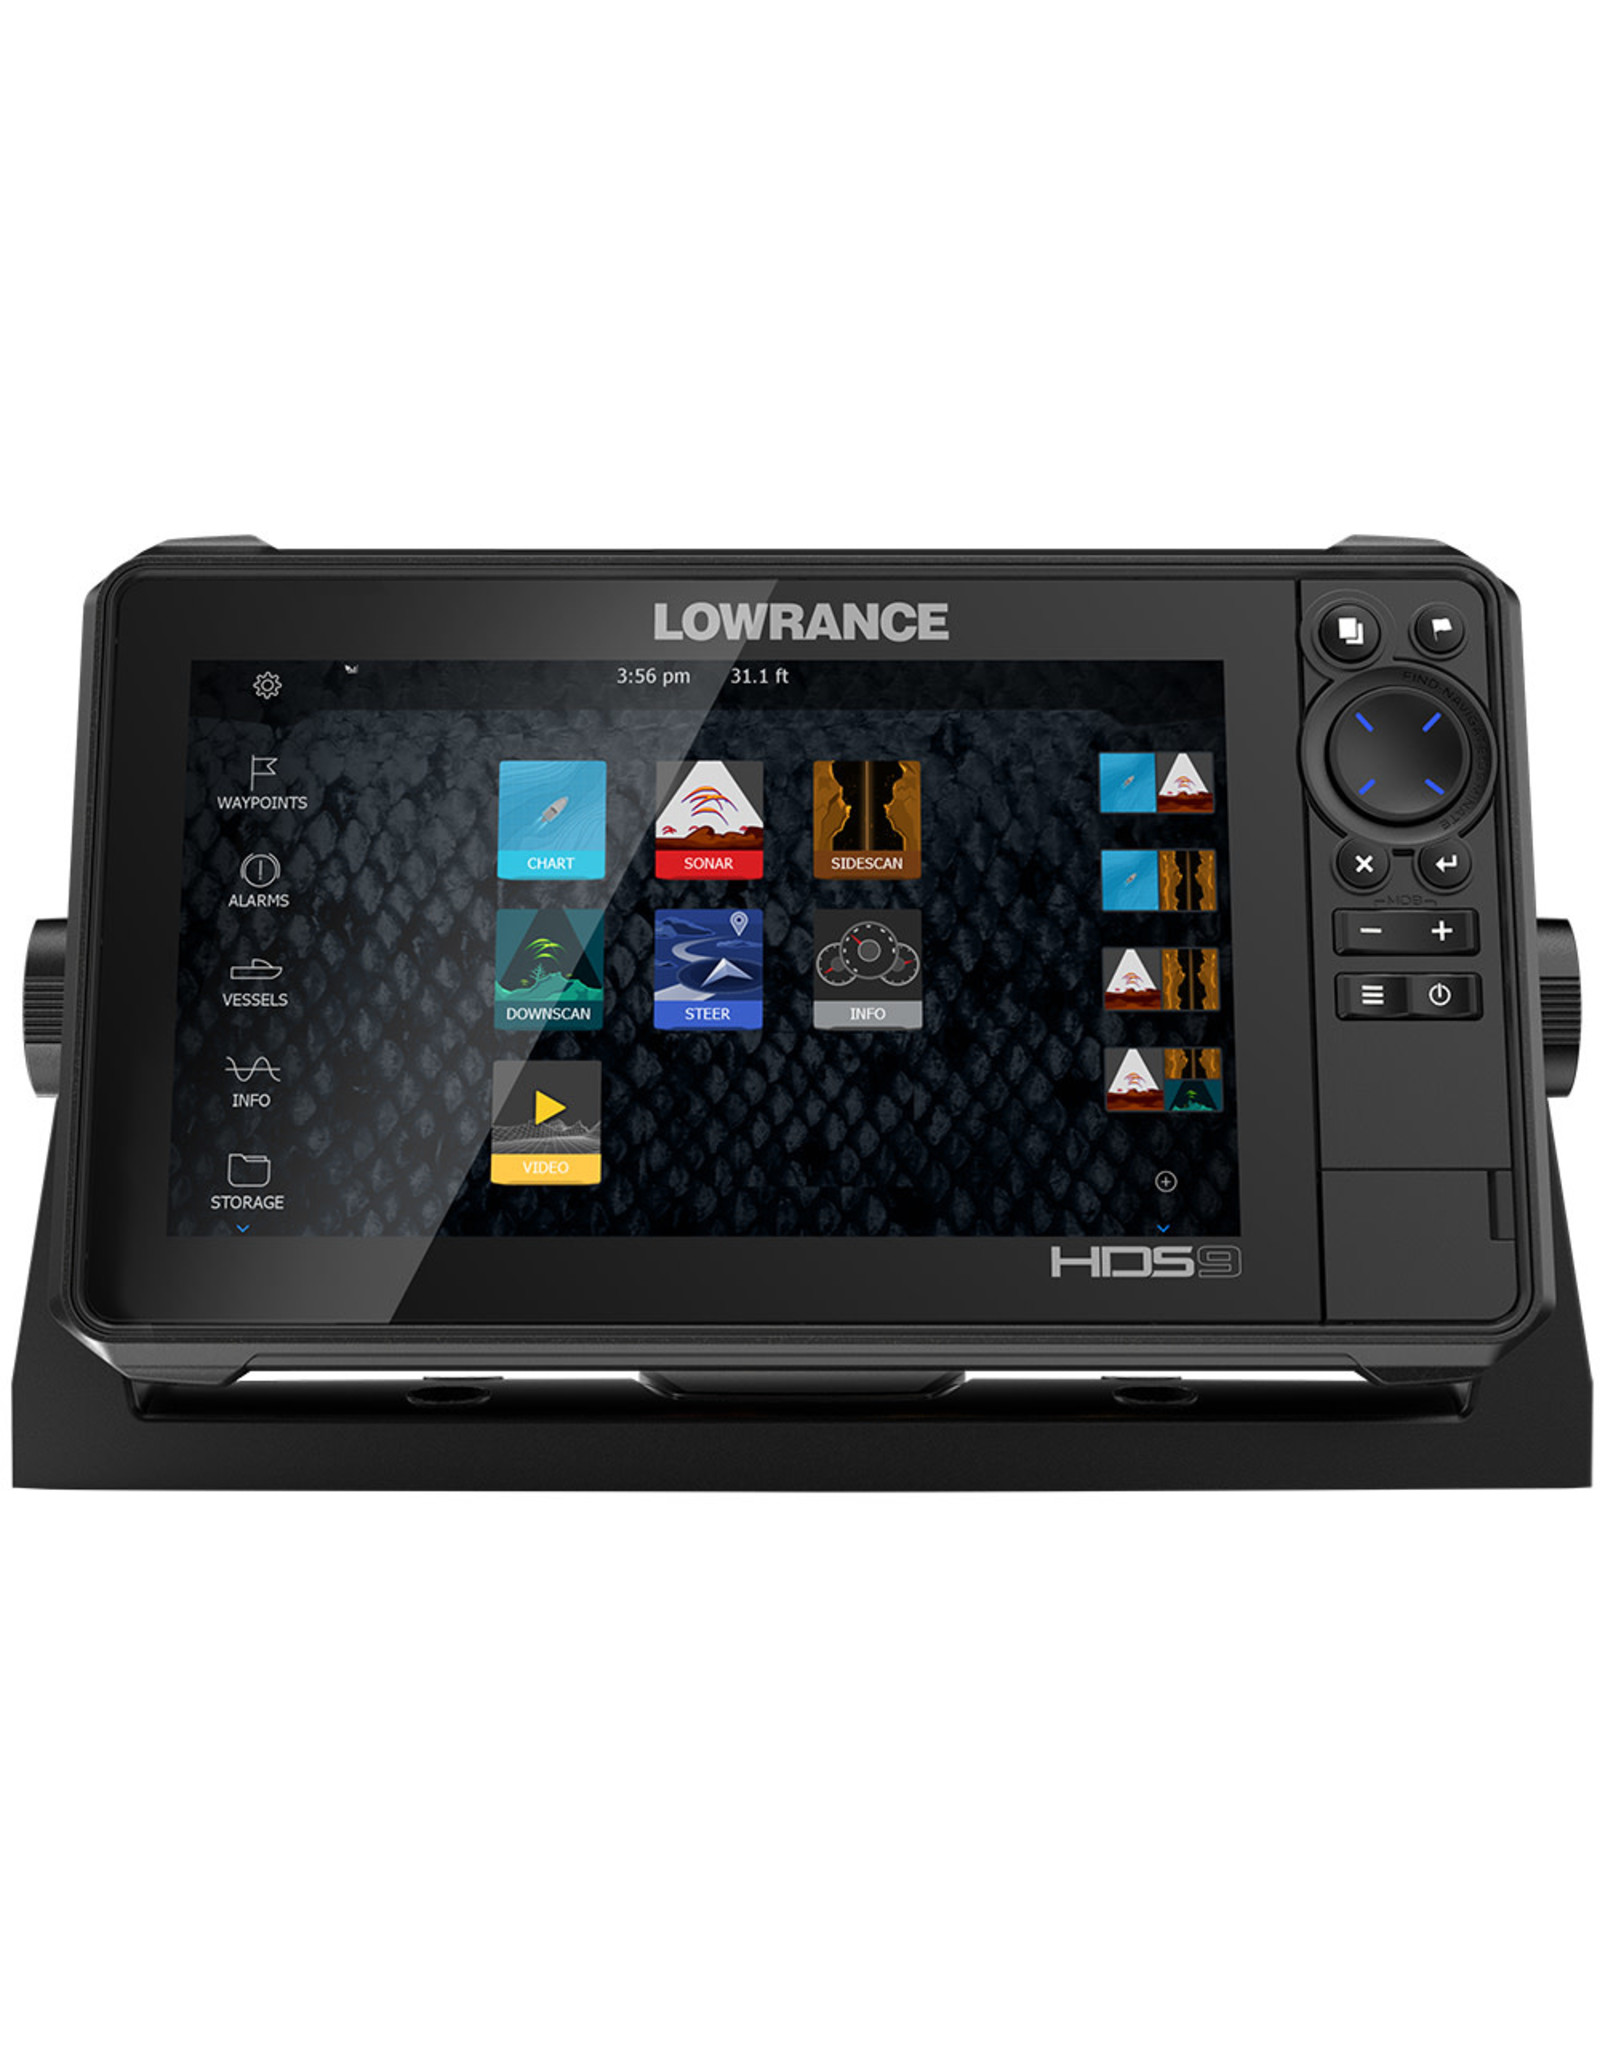 Lowrance HDS-9 LIVE with No Transducer with C-MAP Pro Chart